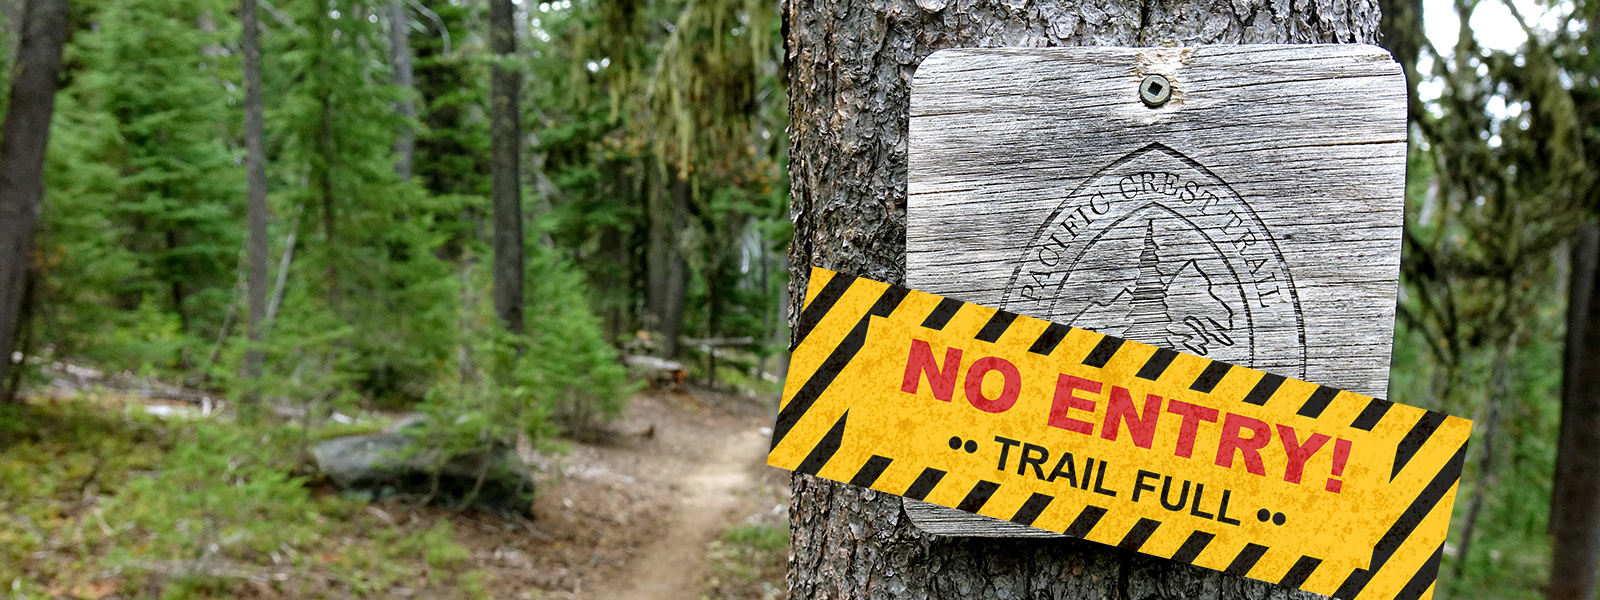 New Oregon Cell Phone Law 2020 New Access Limits Coming to Oregon PCT in 2020   PCT: Oregon